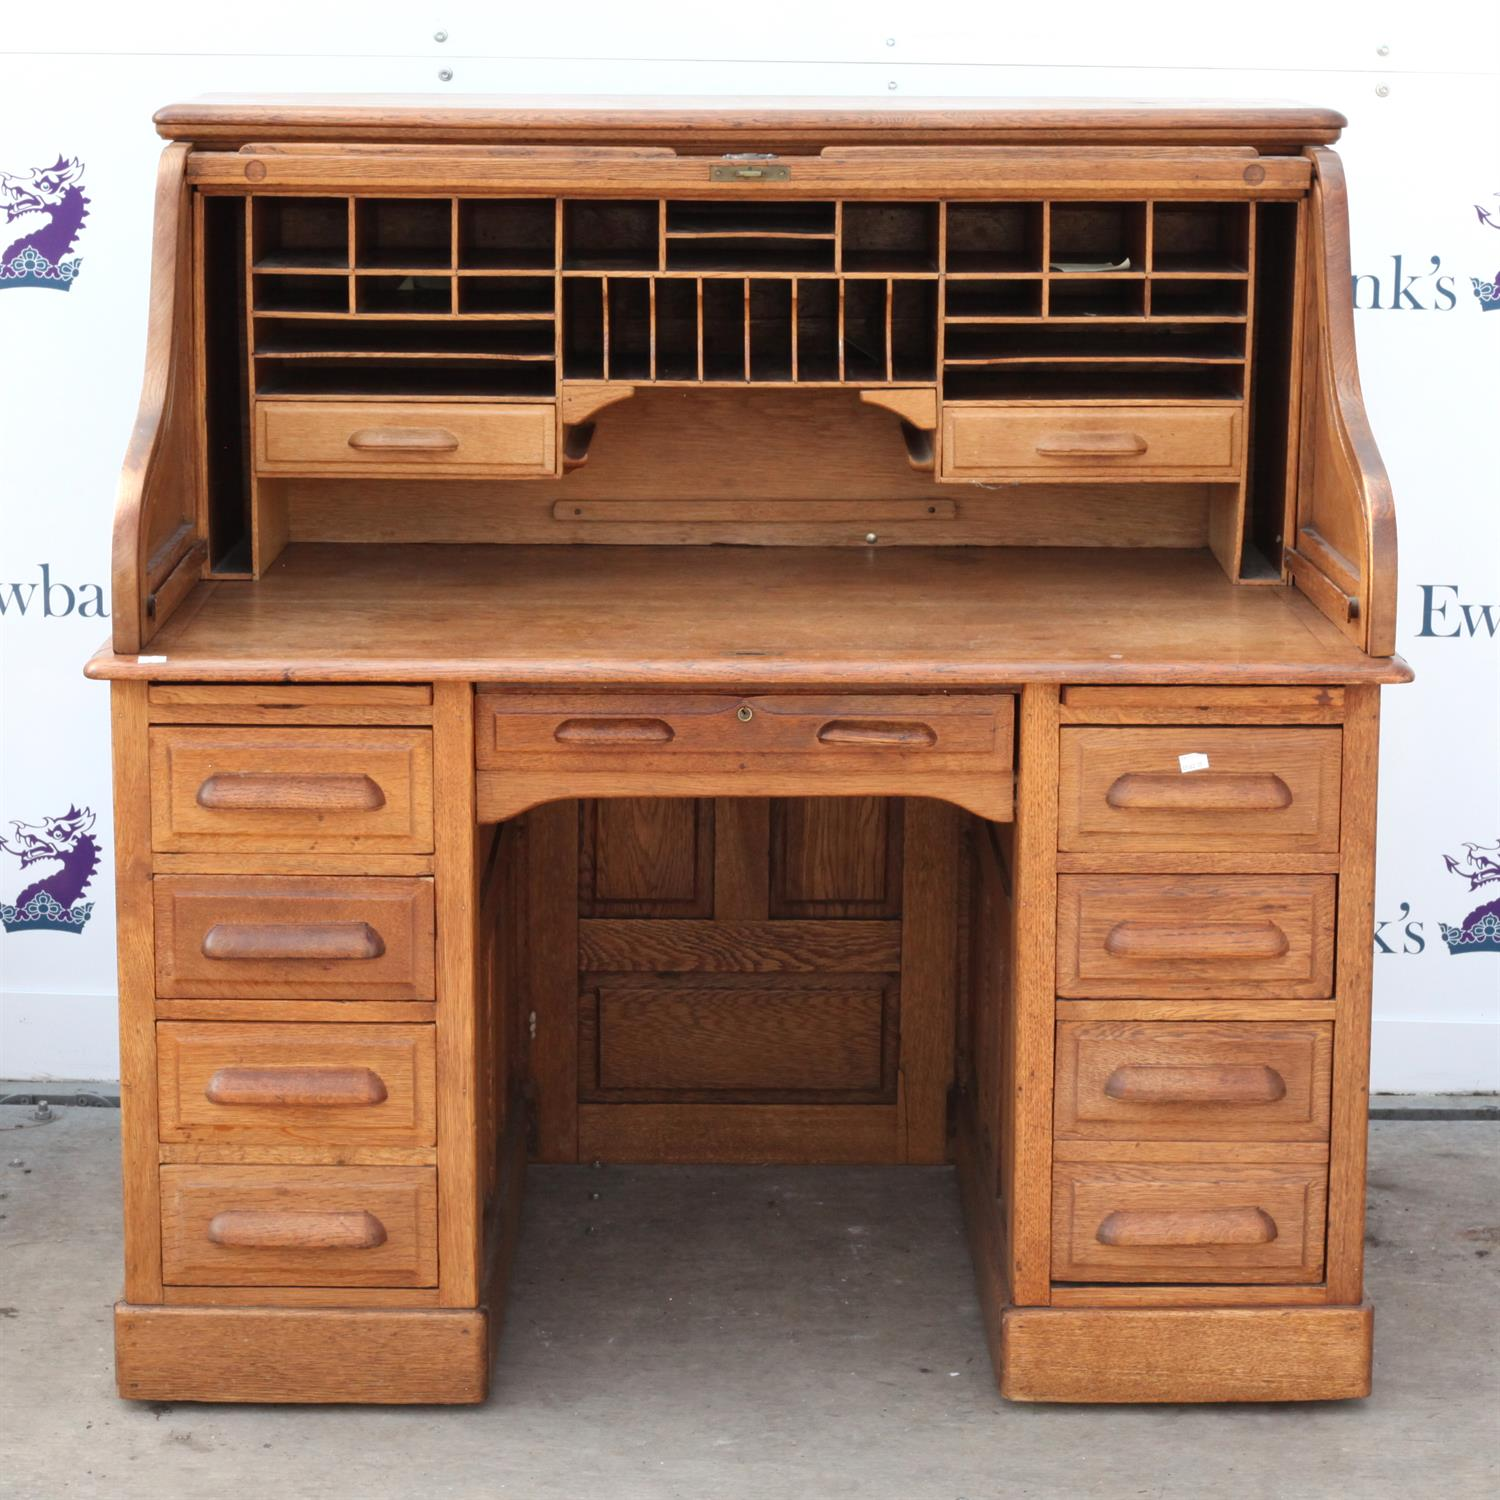 Early 20th century oak roll top desk, the roll top enclosing pigeon holes and drawers on base with